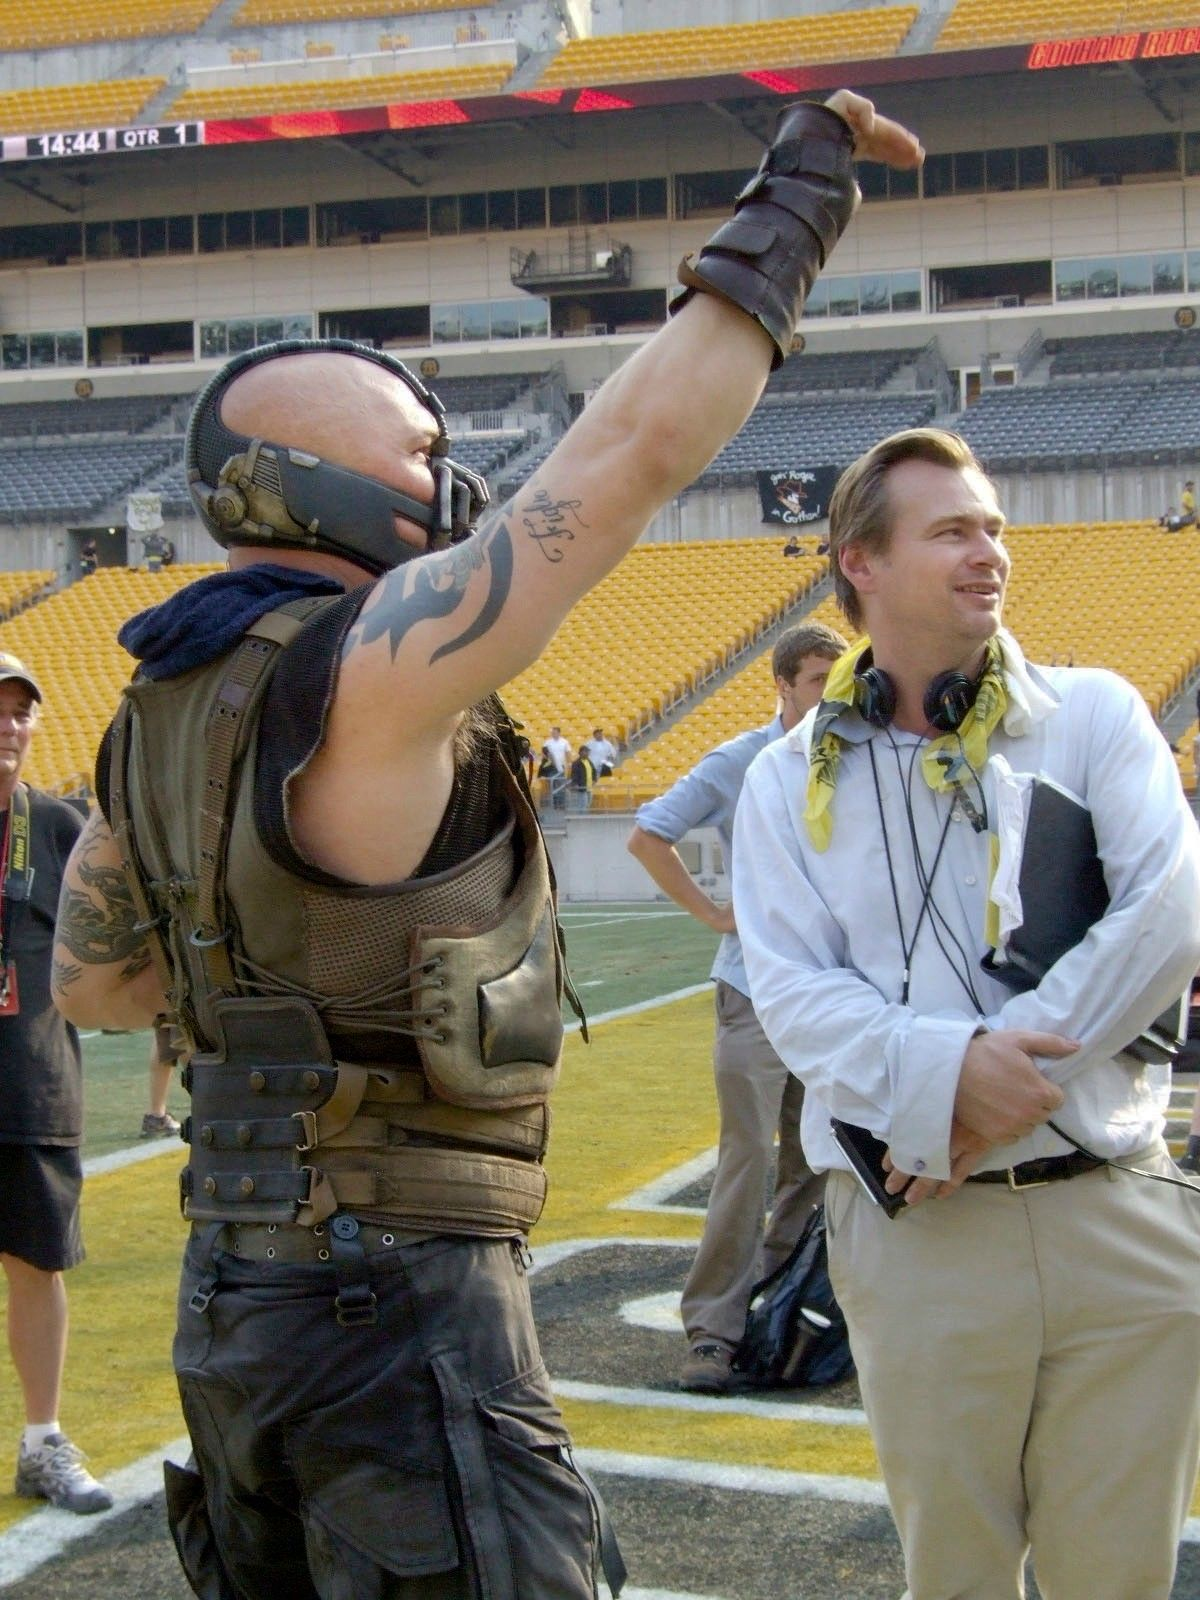 fd12400ccfb31350204079a6703043b5 25 Things You Didn't Know About The Dark Knight Rises